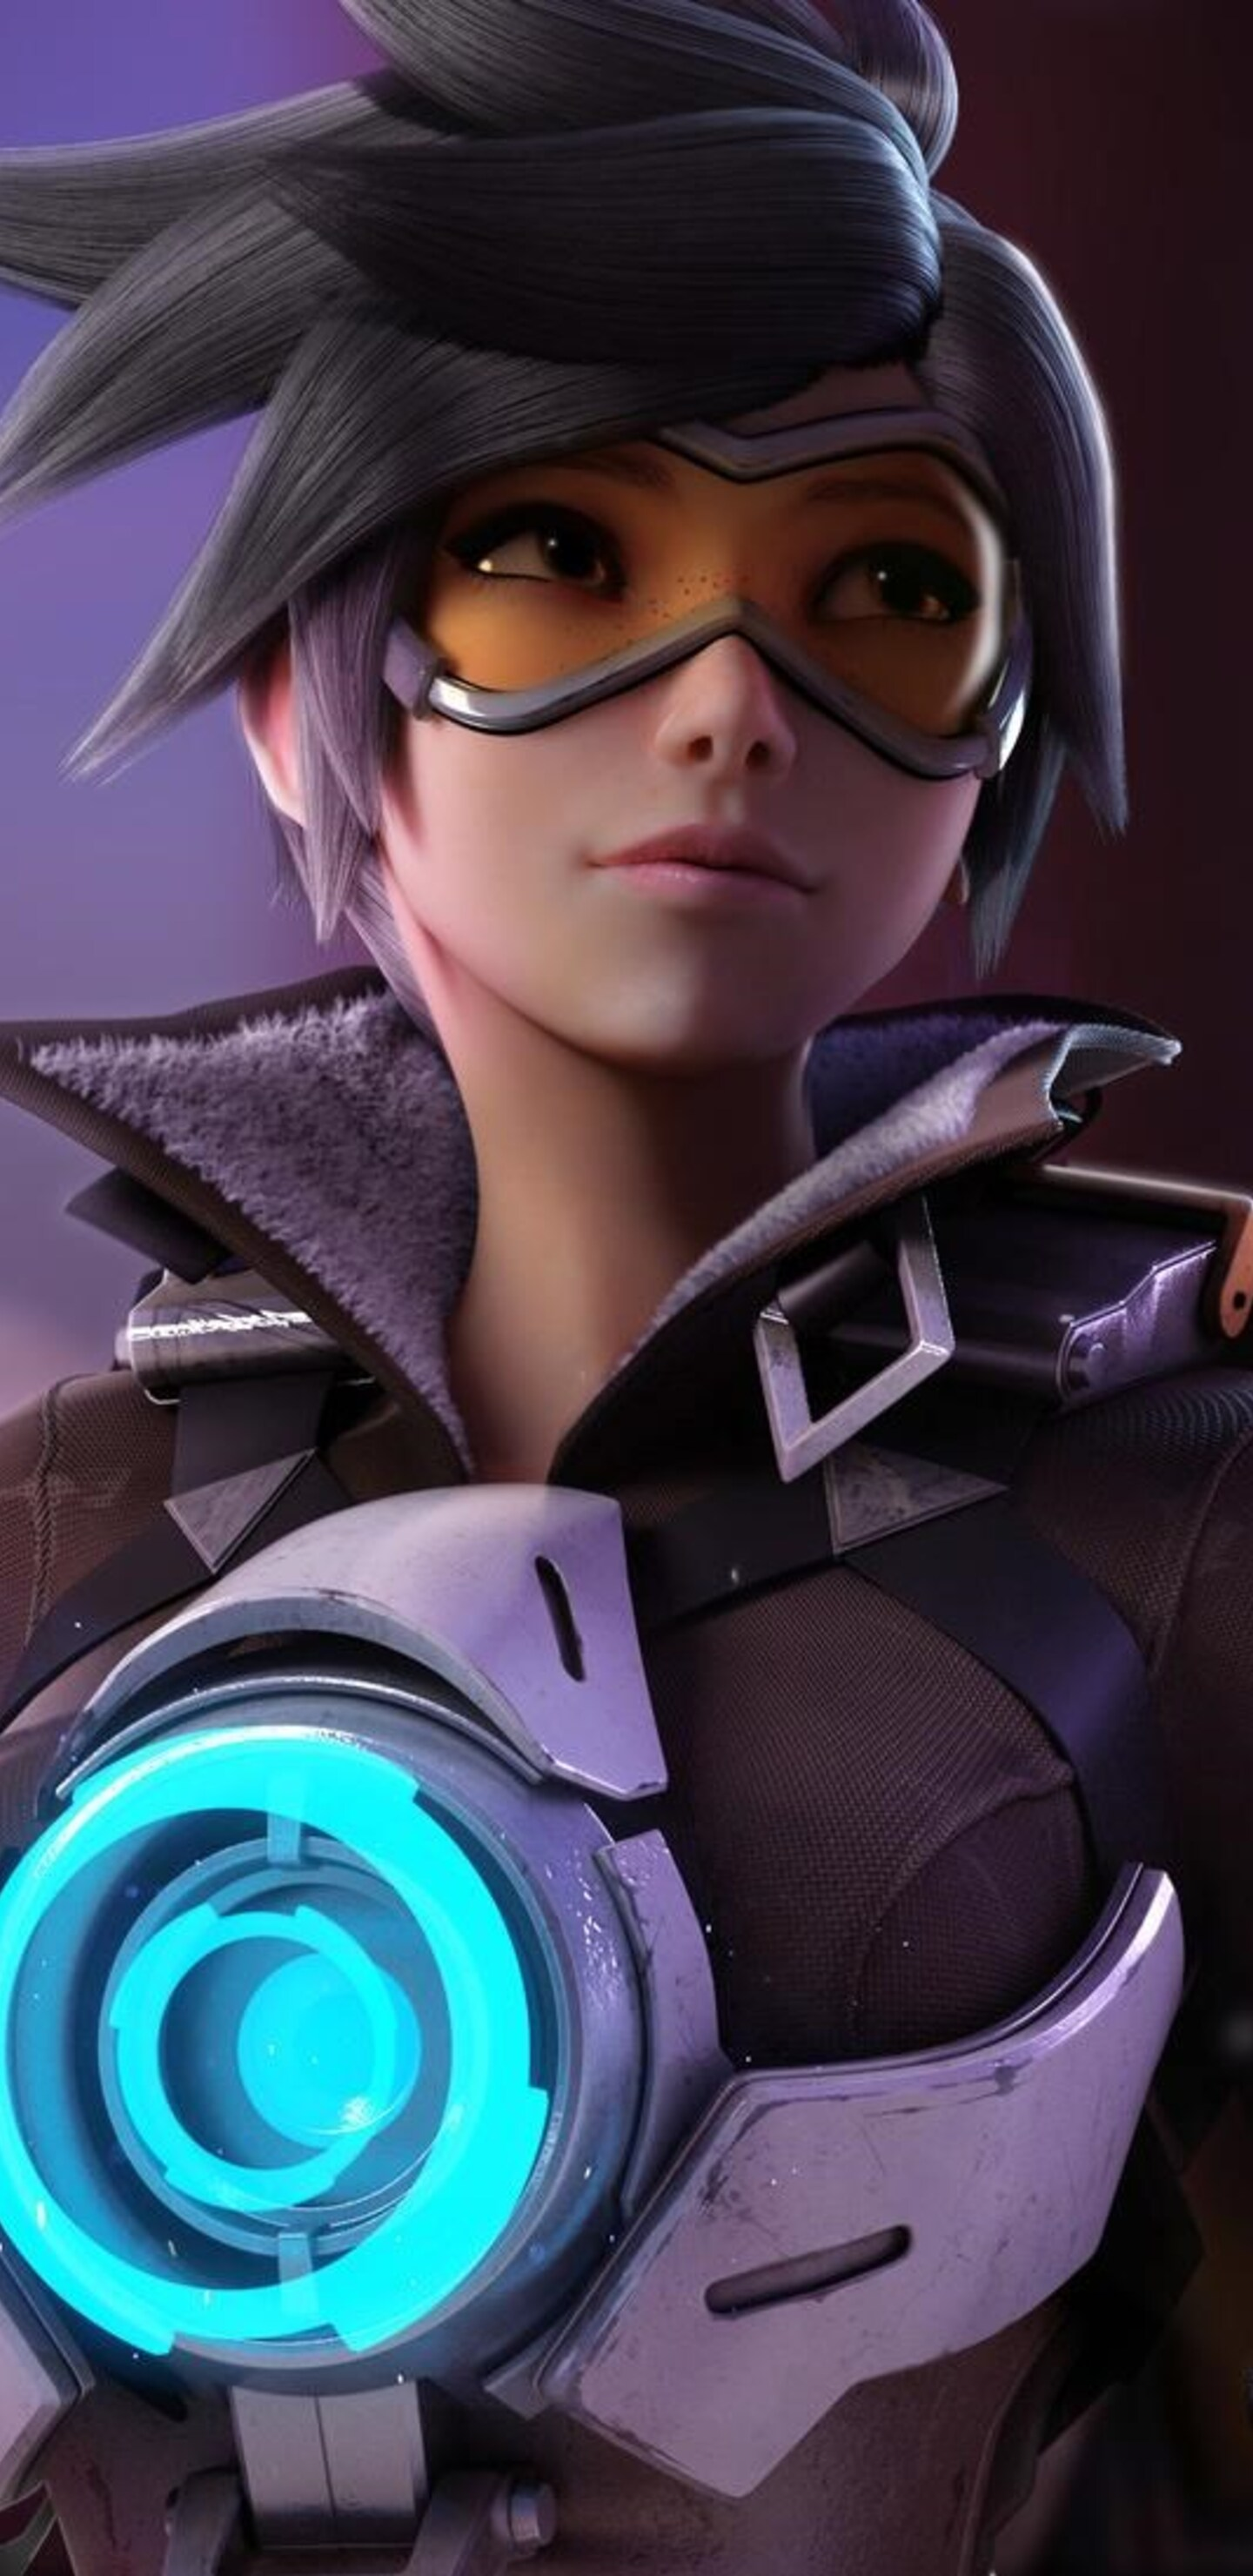 1440x2960 Tracer Overwatch Game Samsung Galaxy Note 9 8 S9 S8 S8